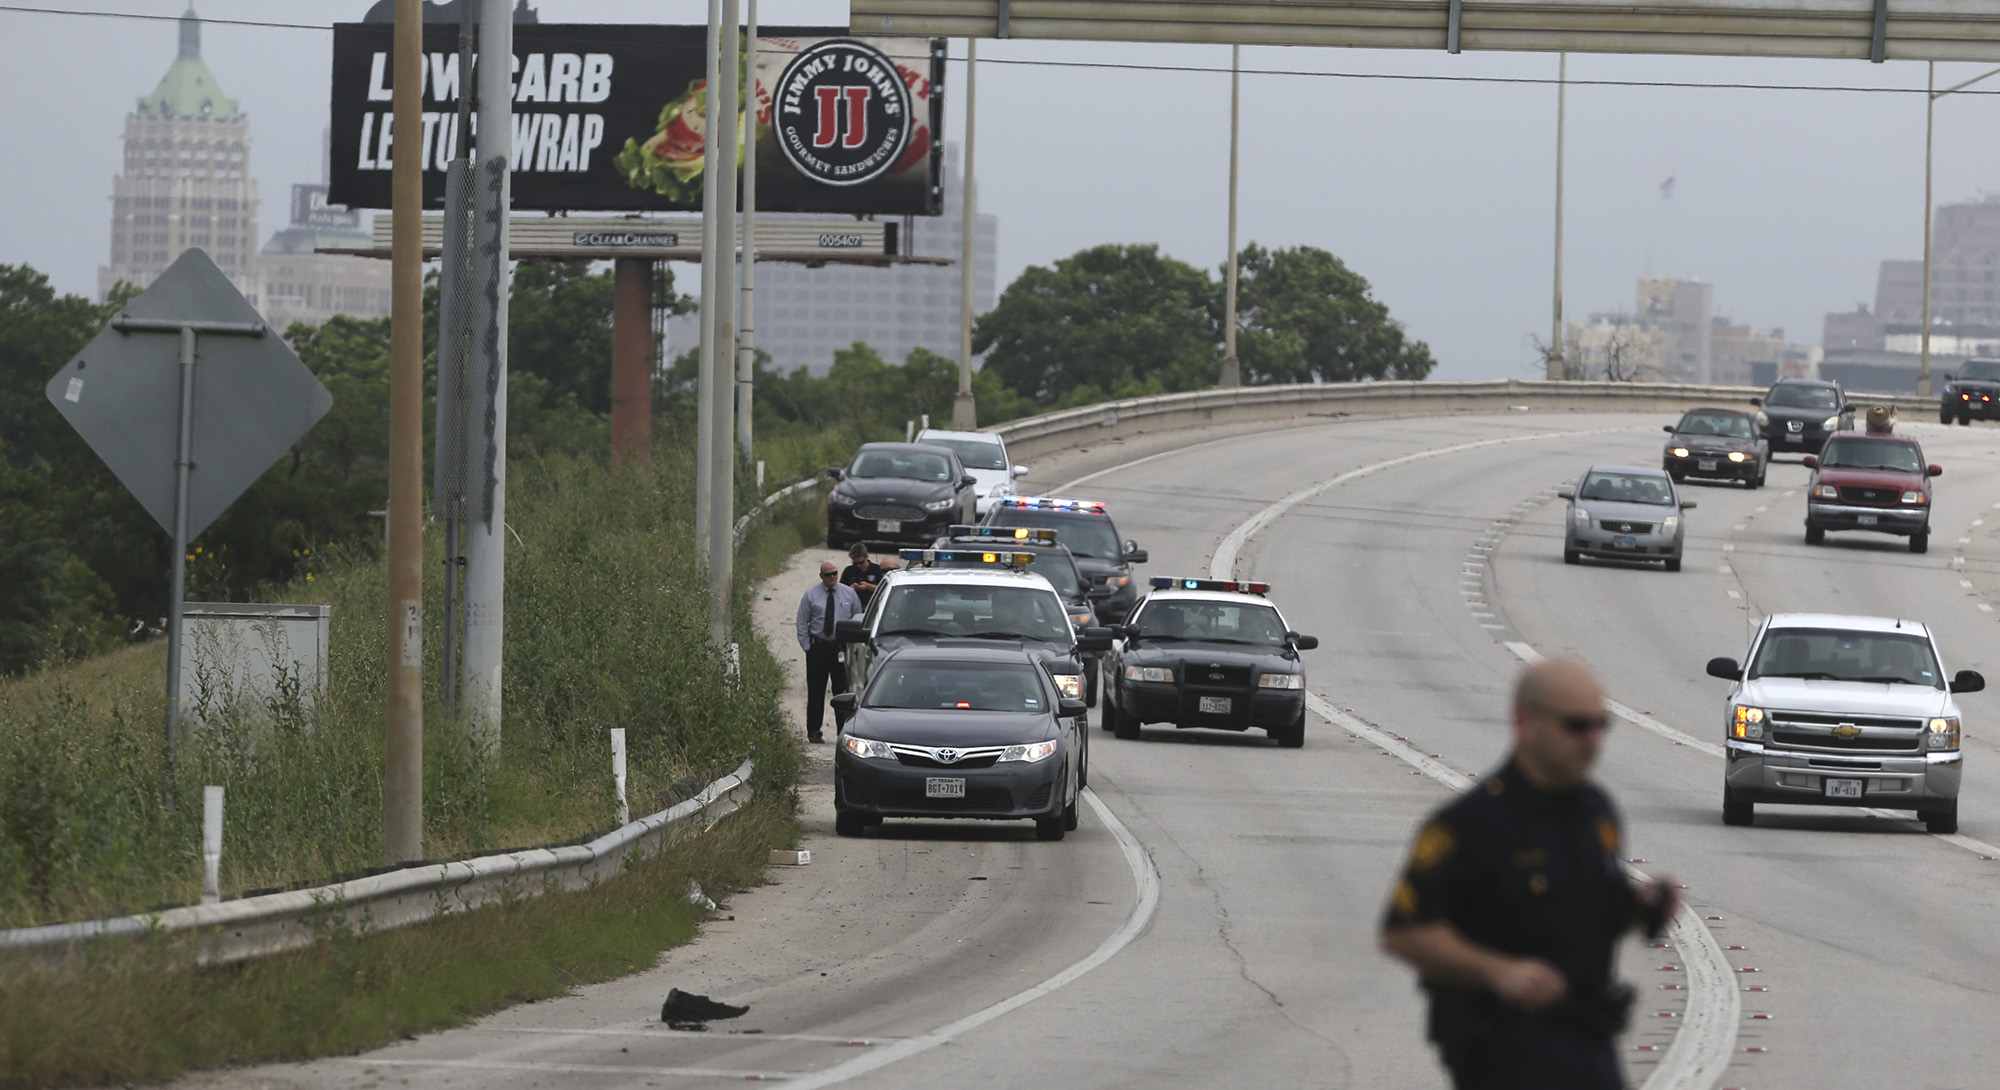 Baby's body found in bag on side of Interstate 37 near downtown San